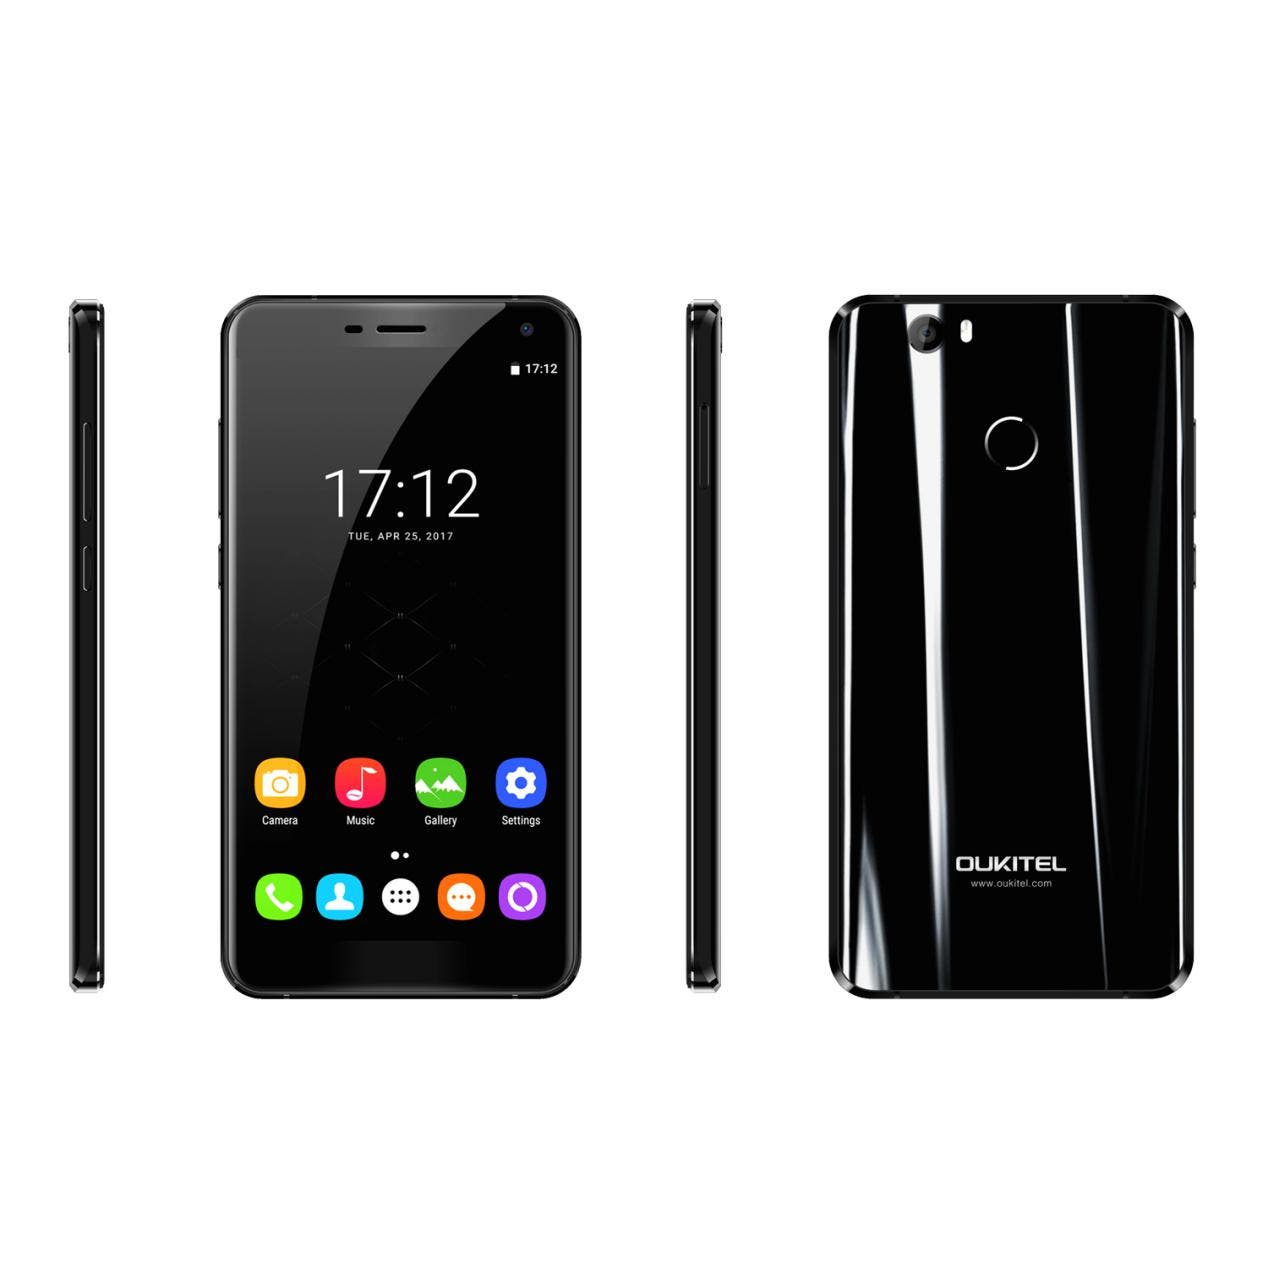 OUKITEL U11 Plus presale